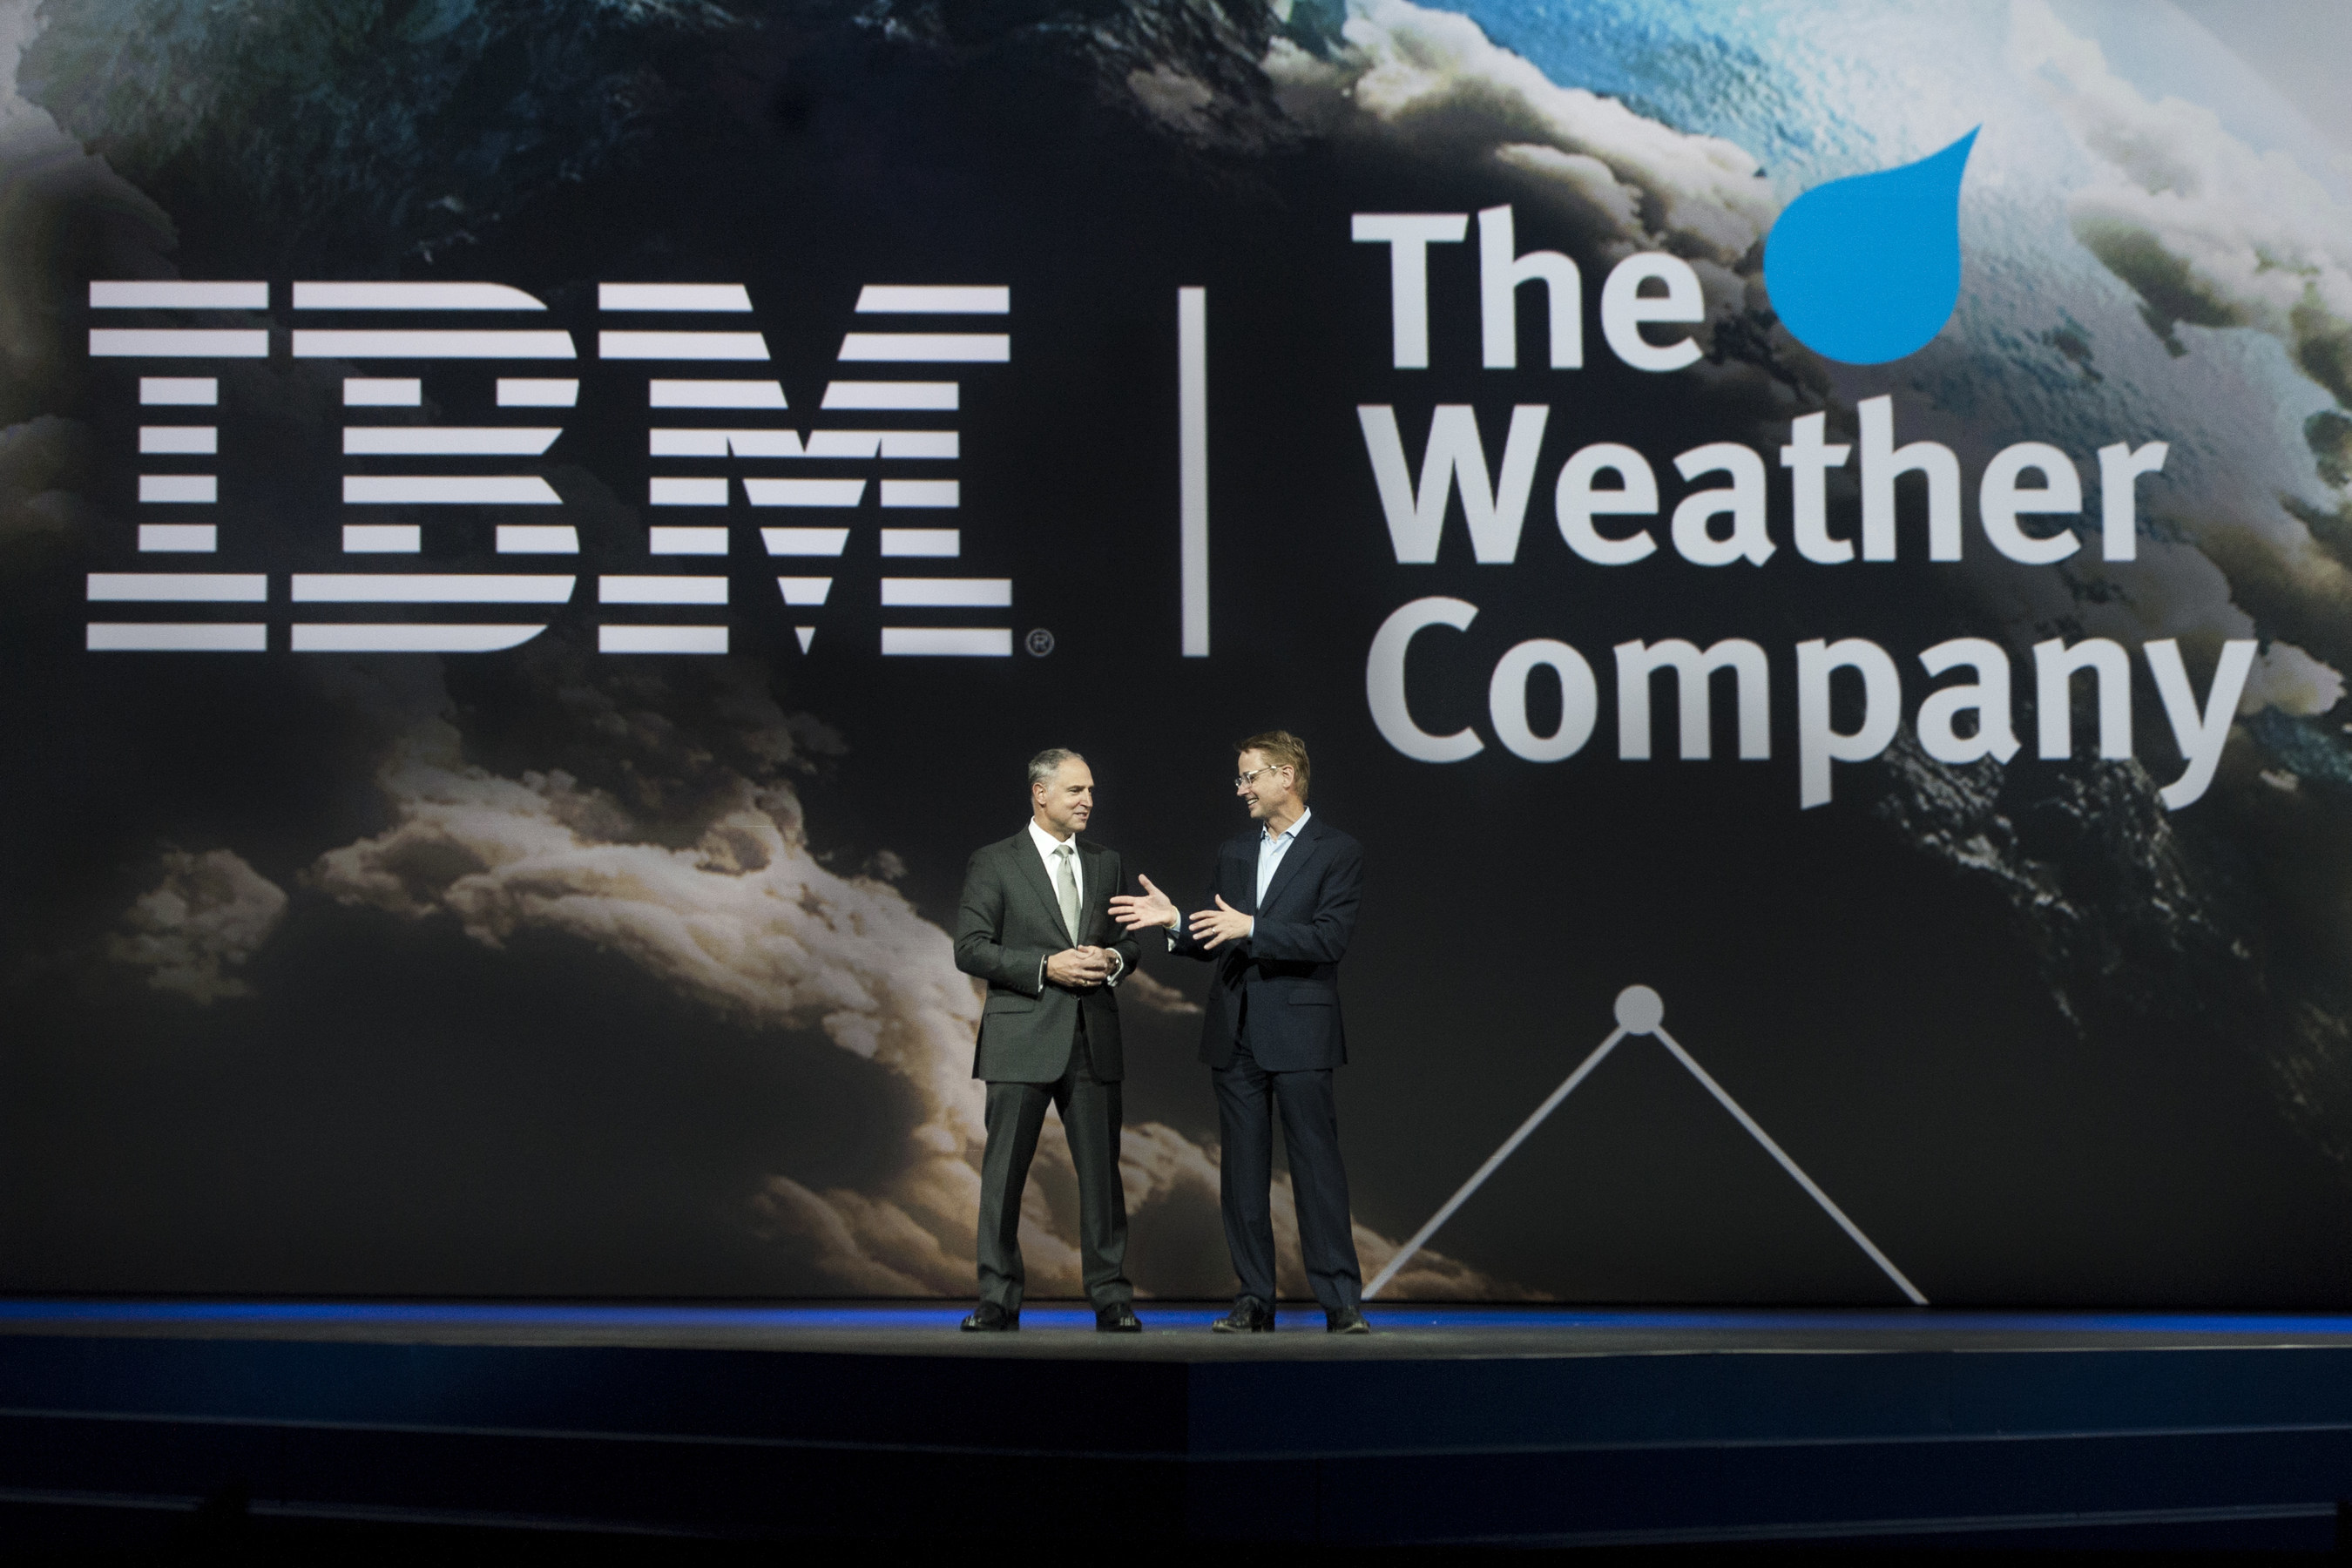 IBM Senior Vice President Bob Picciano (left) joins The Weather Company Chairman & CEO David Kenny (right) at the IBM Insight Conference in Las Vegas. IBM has entered into a definitive agreement to acquire The Weather Company's B2B, mobile and cloud-based web properties, including WSI, weather.com, Weather Underground and The Weather Company brand.